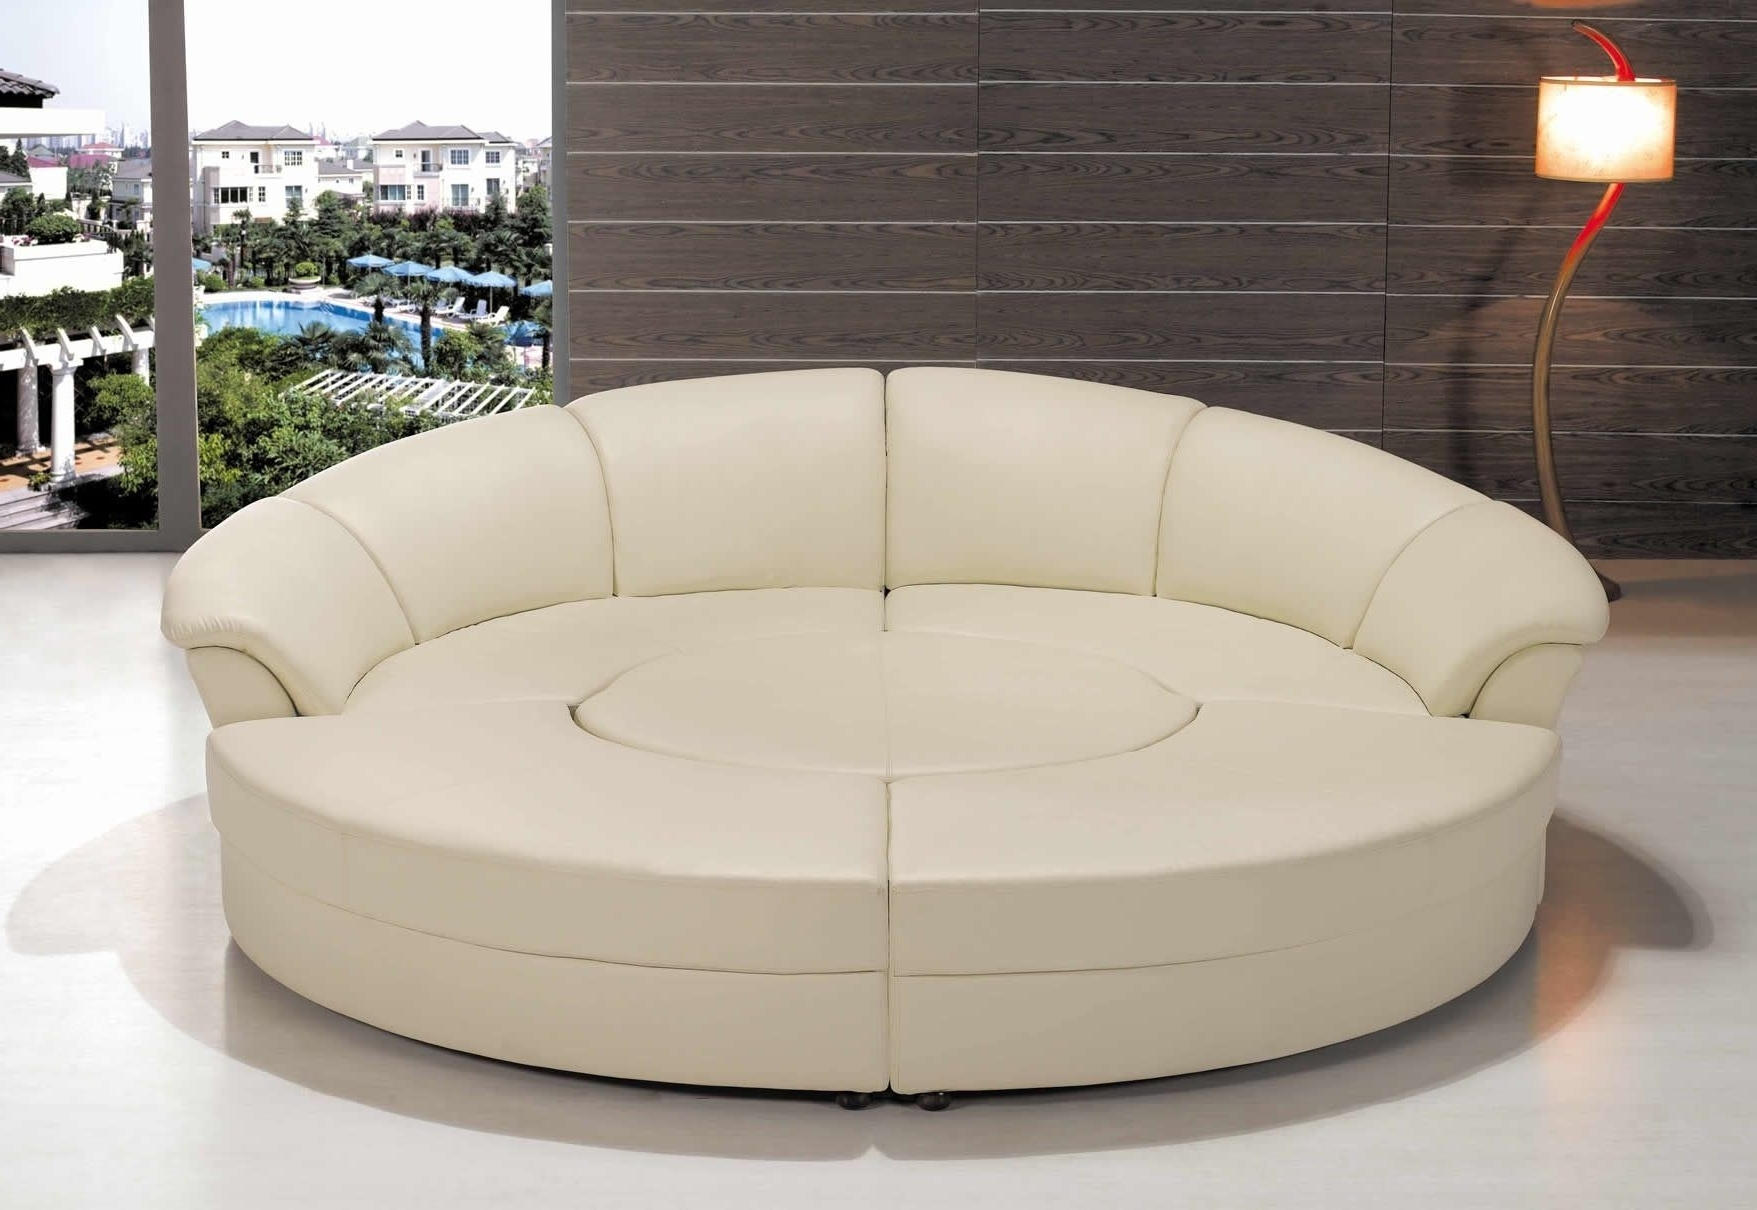 Fashionable Semi Circular Sectional Sofa 2 – Semi Circular Sofa Uk, Sofa Regarding Semicircular Sofas (View 3 of 15)